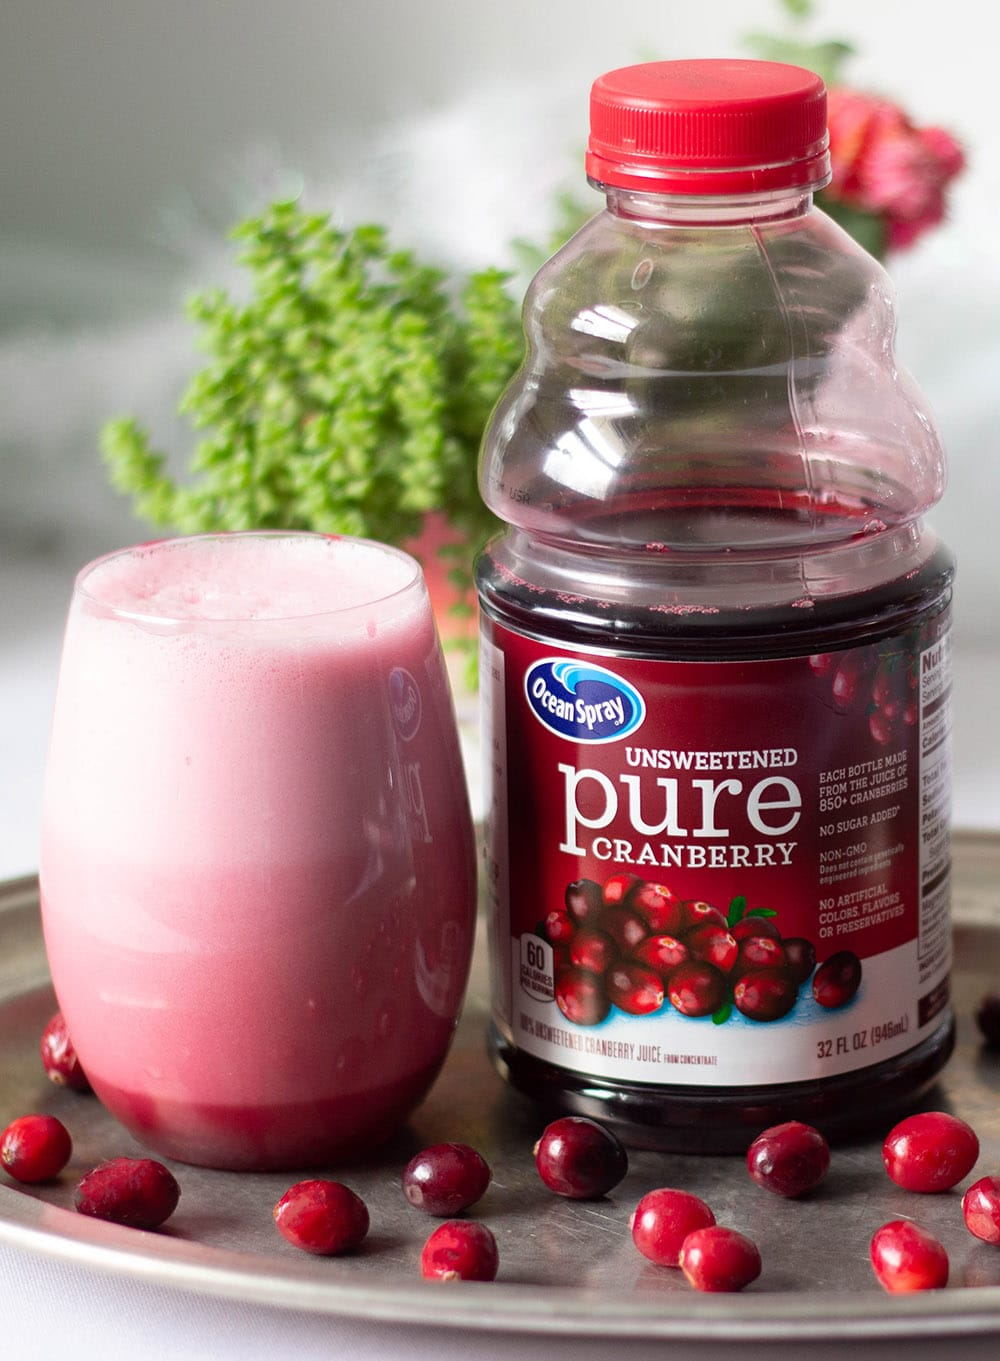 Cranberry slushy drink next to bottle